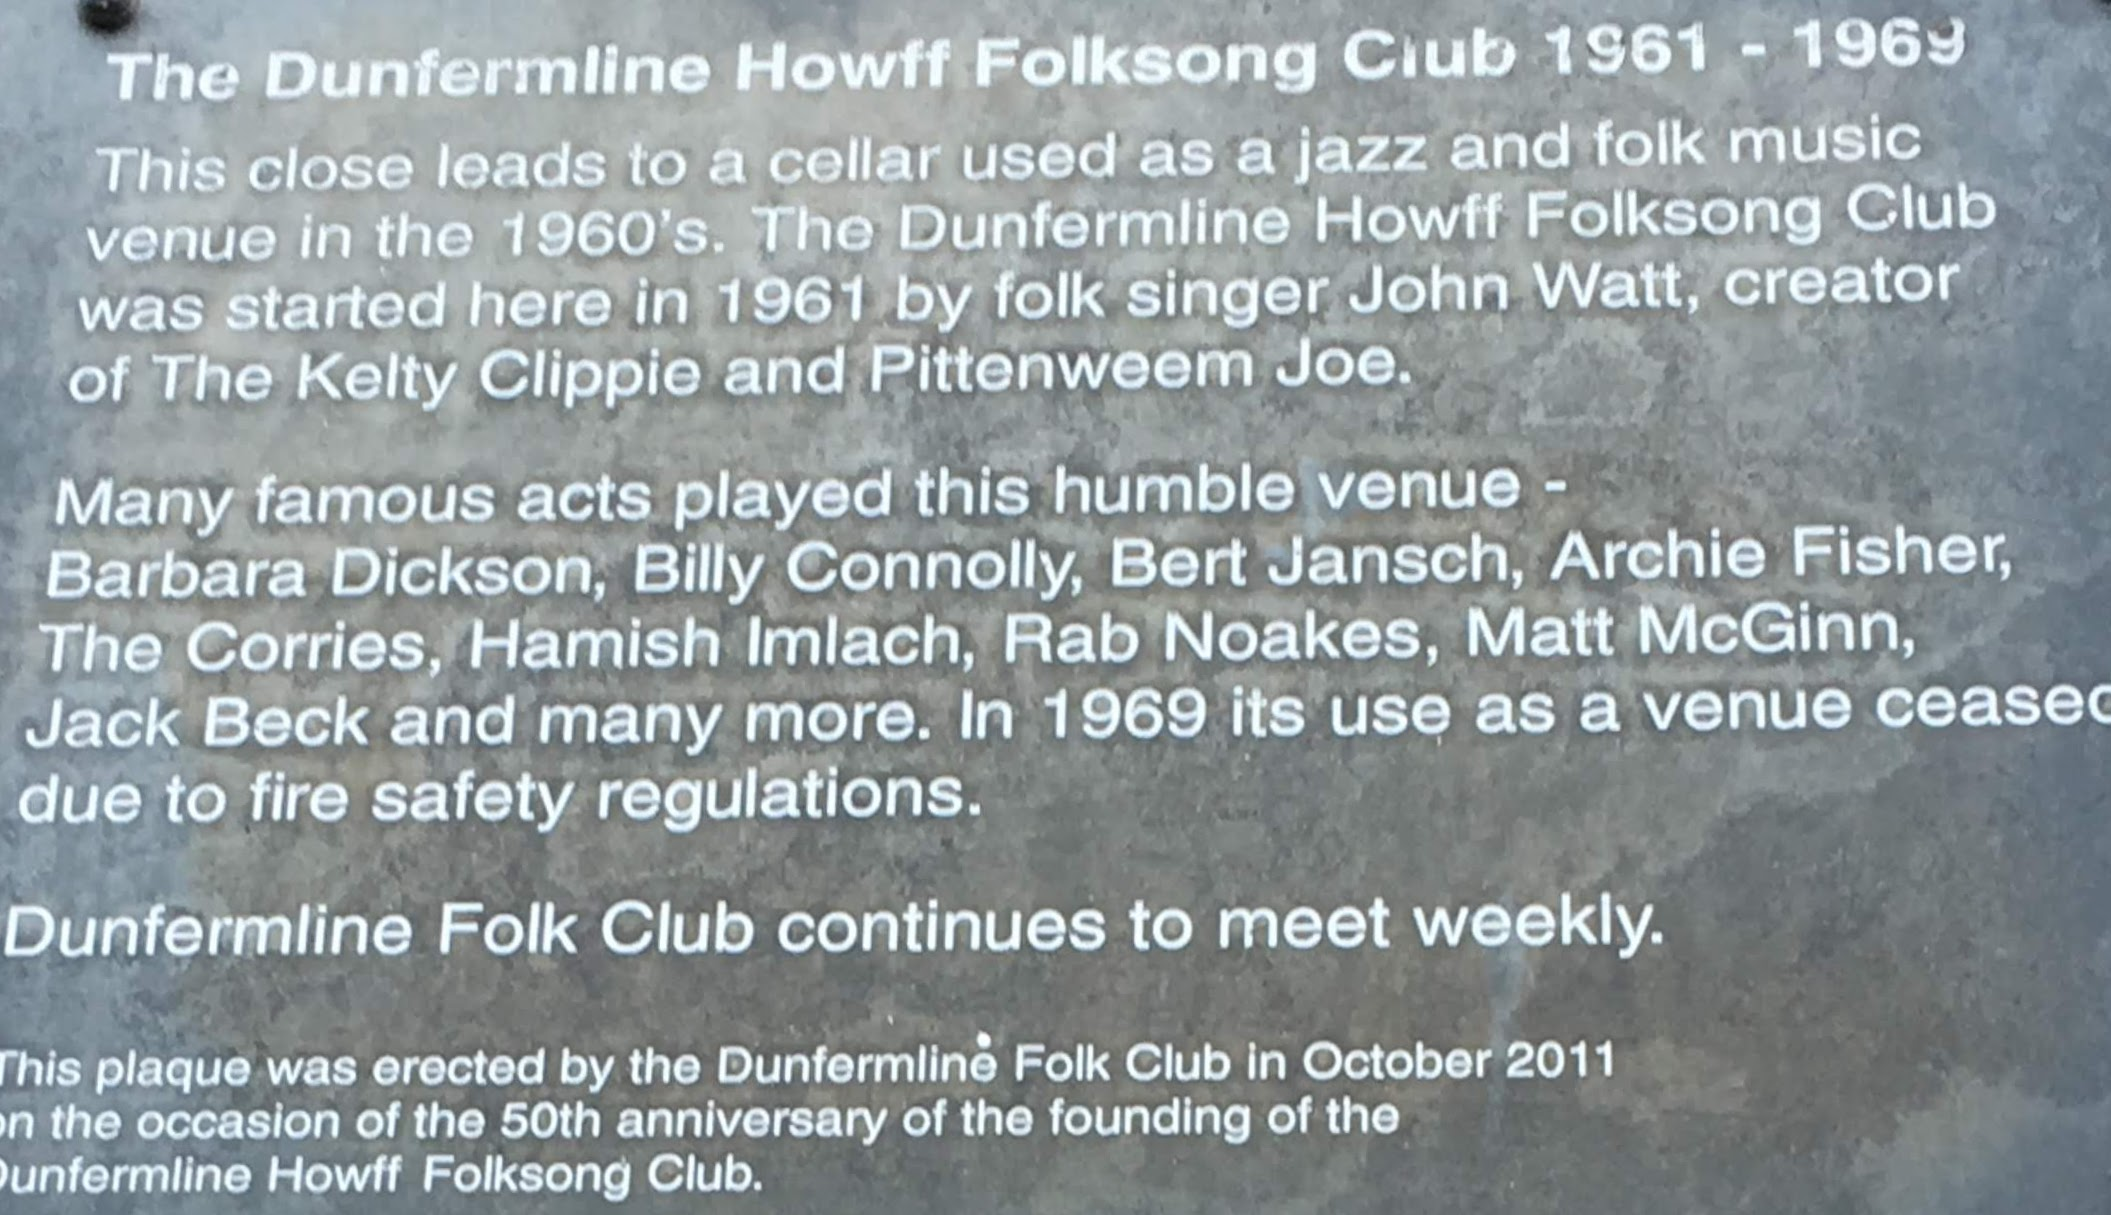 Detail of plaque which details The Dunfmerline Howff Folksong Club 1961-1969.